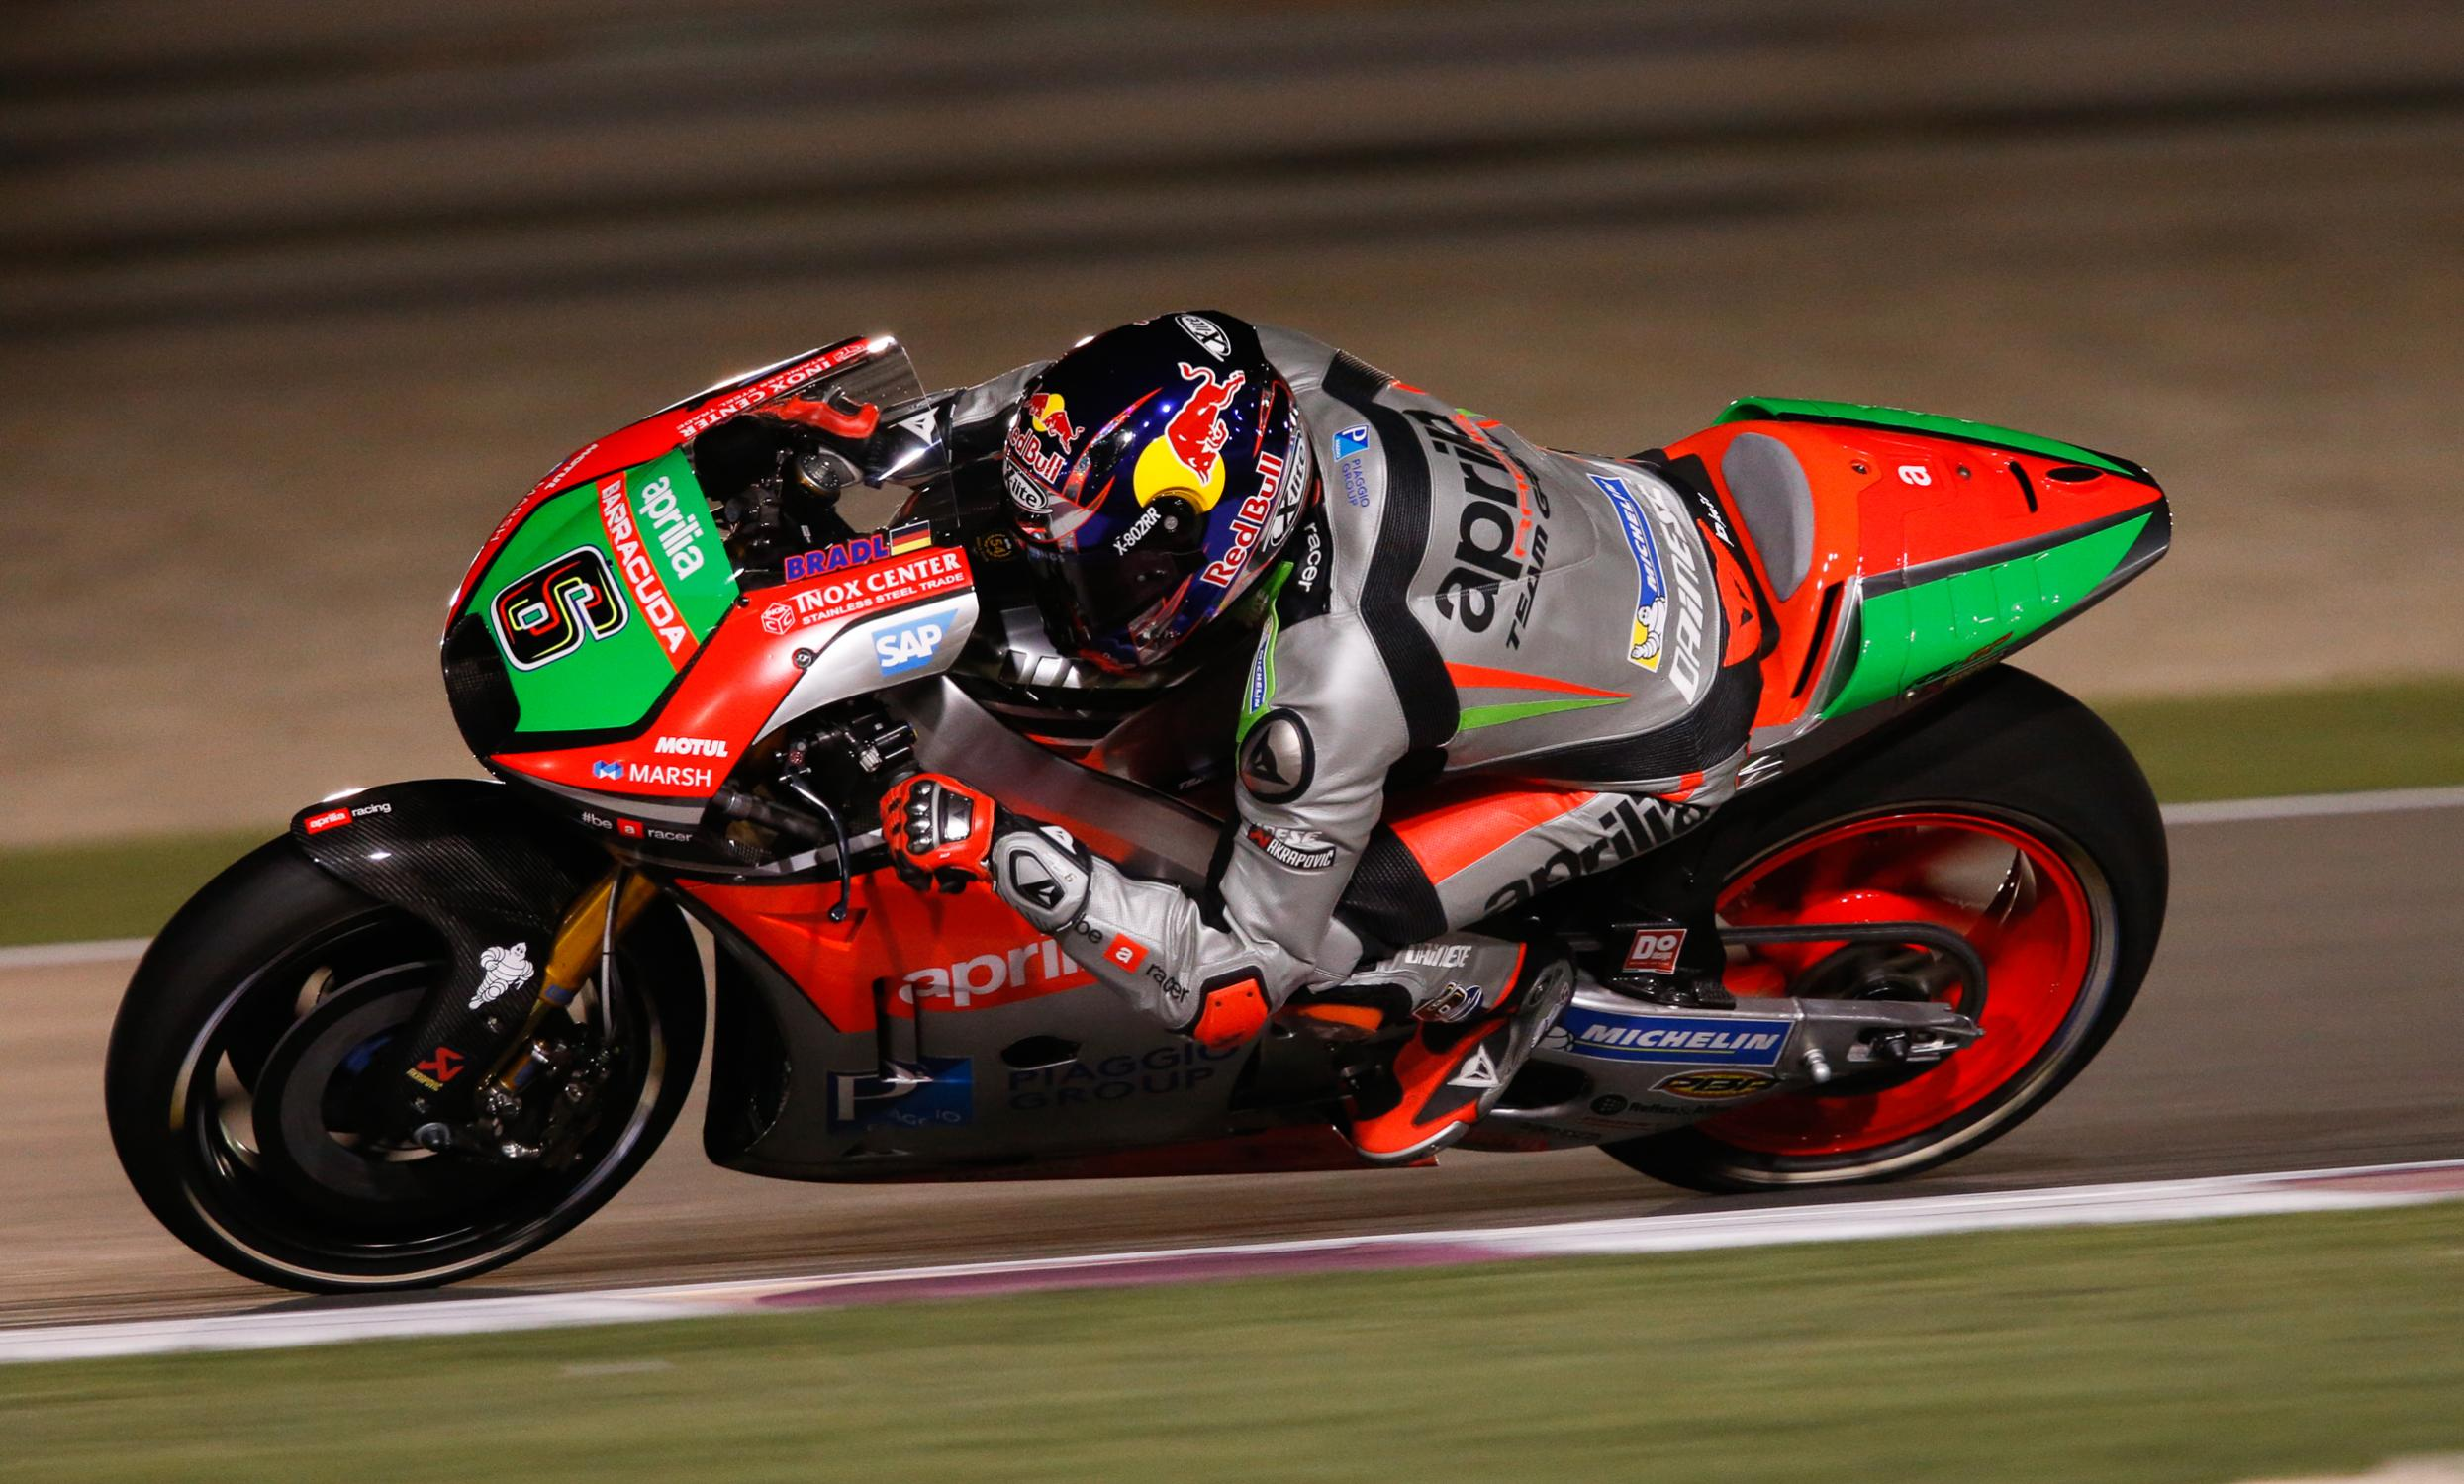 06-bradl_gp_0595_0.gallery_full_top_fullscreen.jpg